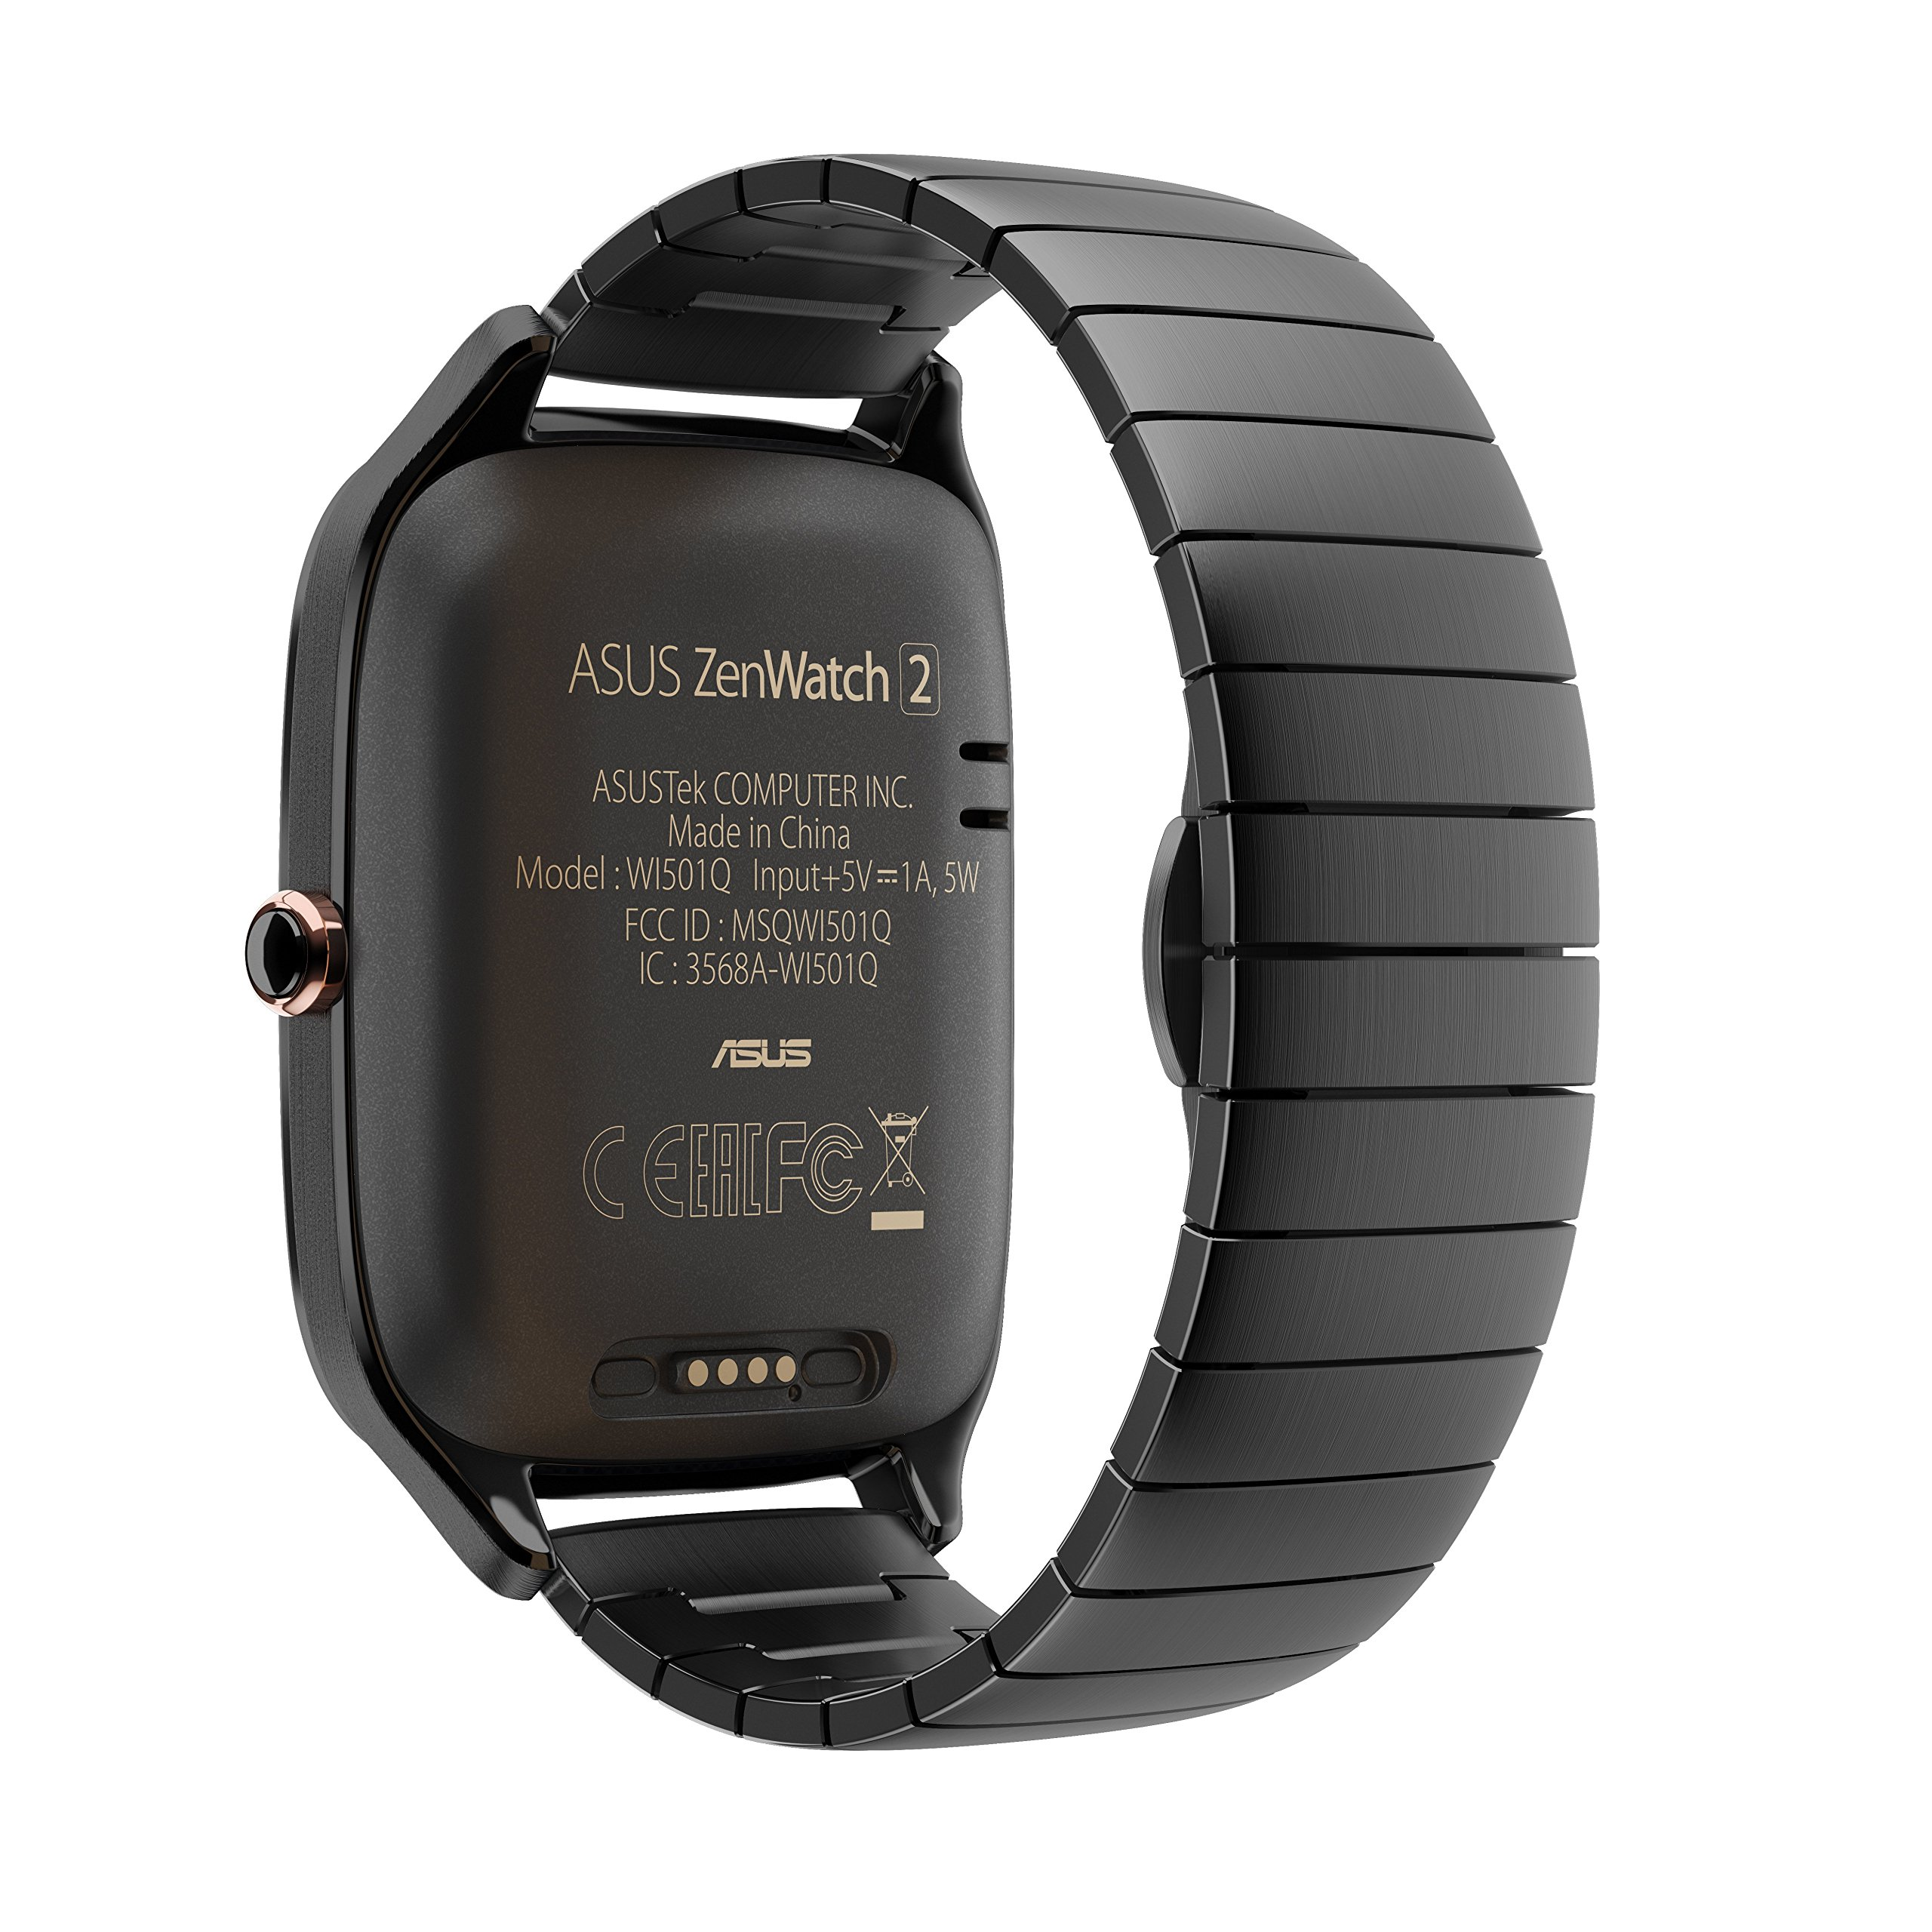 ASUS ZenWatch 2 Gunmetal Gray 41mm Smart Watch with HyperCharge Battery, 1.63-inch AMOLED Gorilla Glass 3 TouchScreen, 4GB Storage, IP67 Water Resistant by Asus (Image #5)